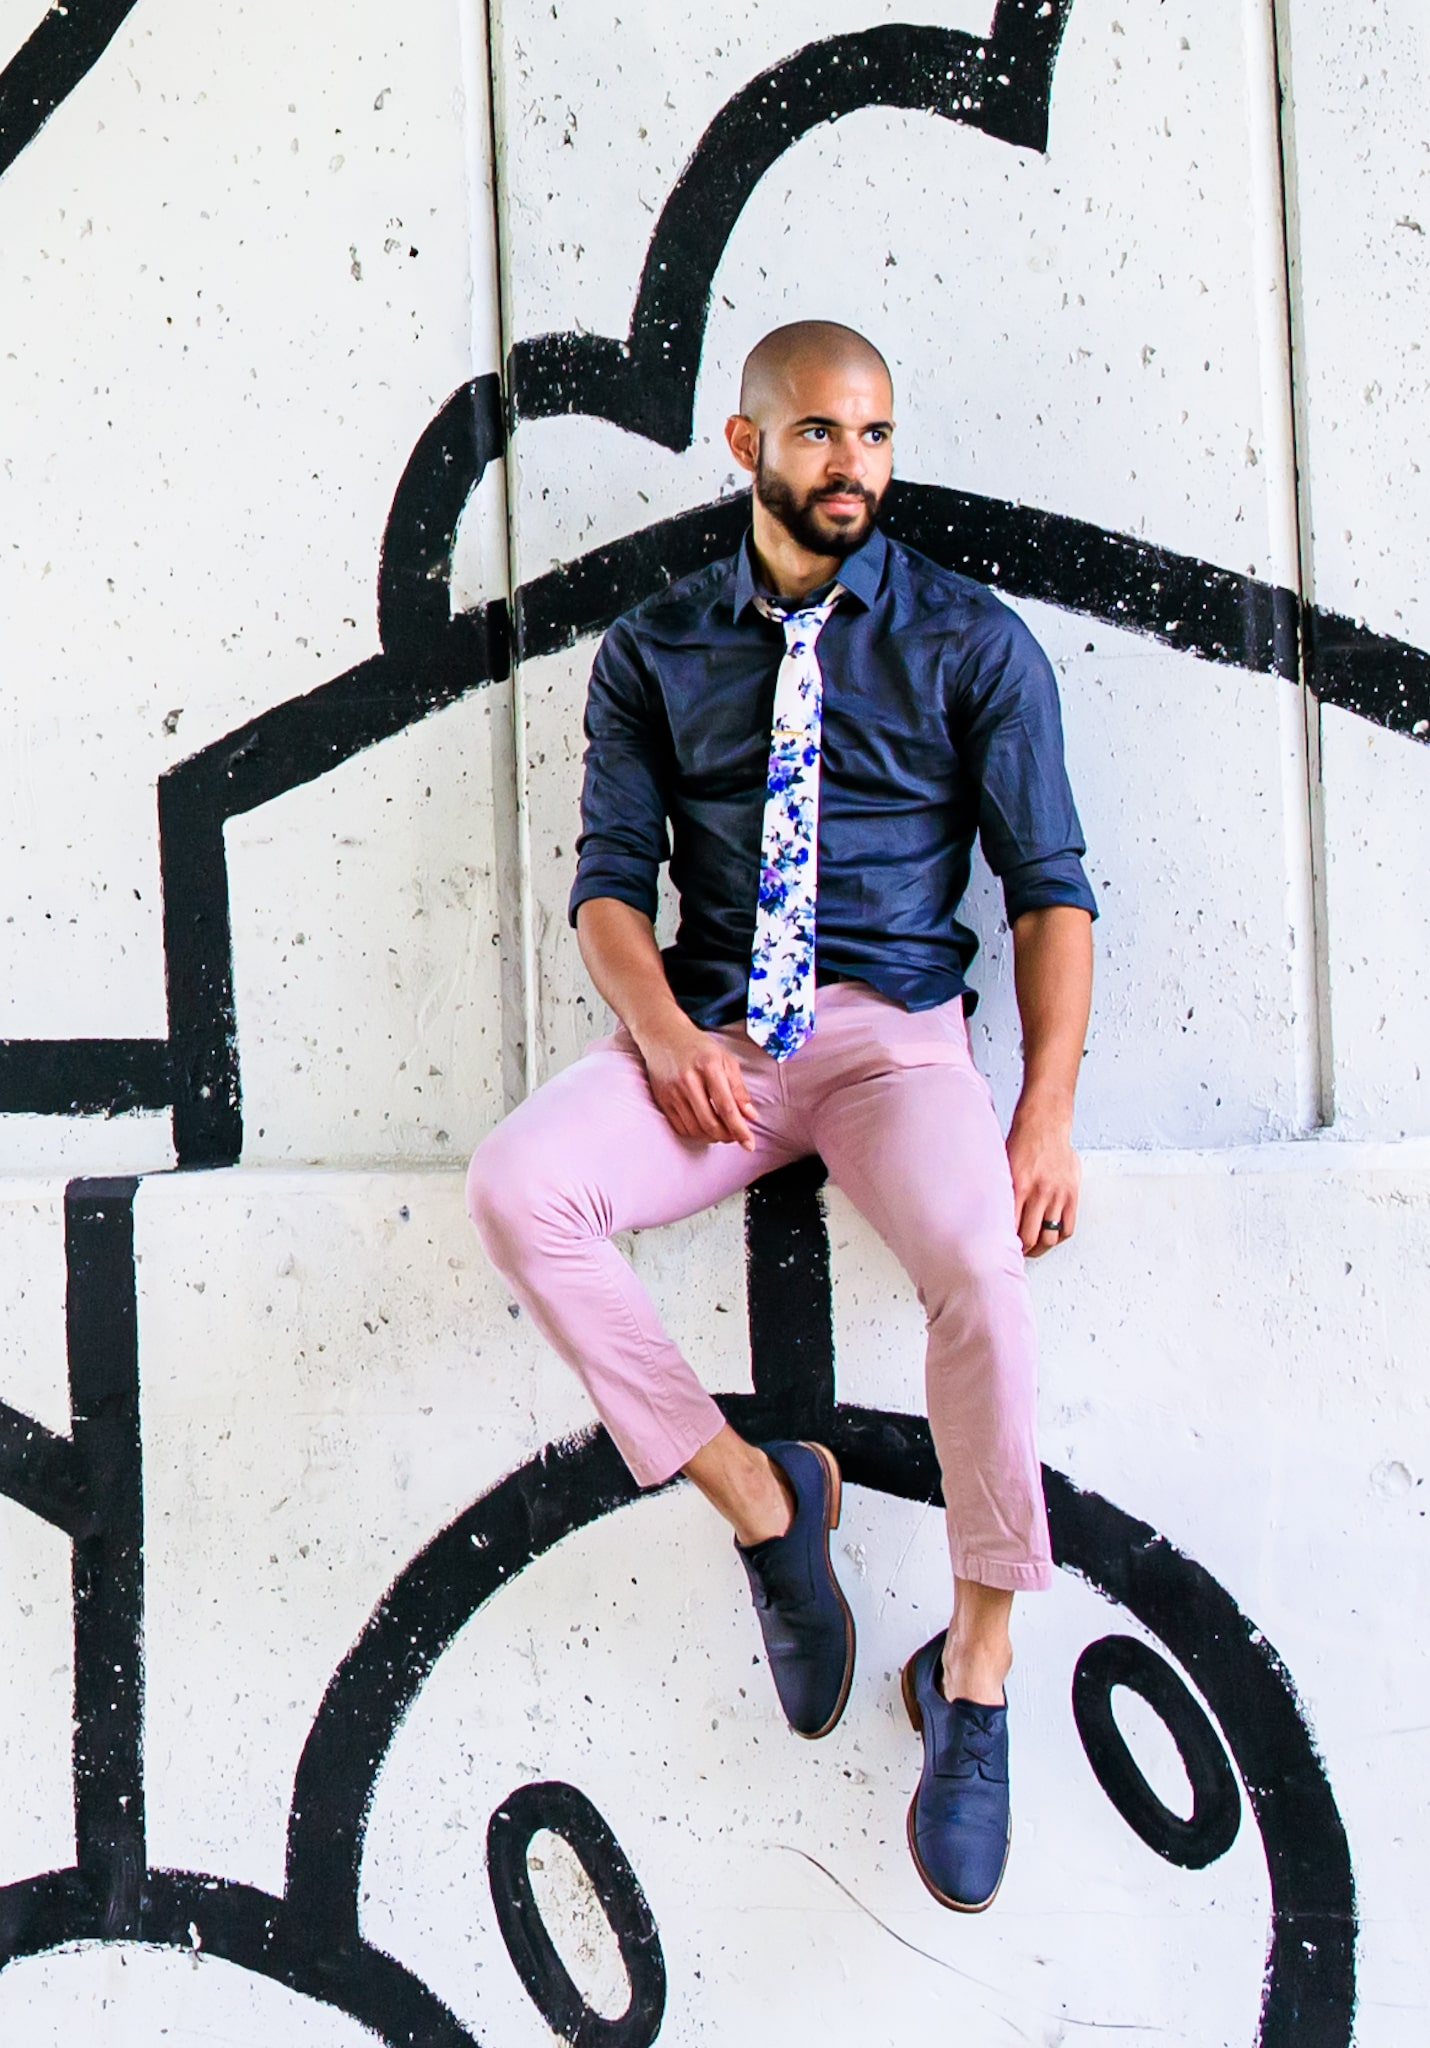 A bald man sitting on a ledge, wearing business casual with a fashion twist of pink pants and colorful tie. Portrait taken by Hance Studios in Berkley, Michigan 48072.